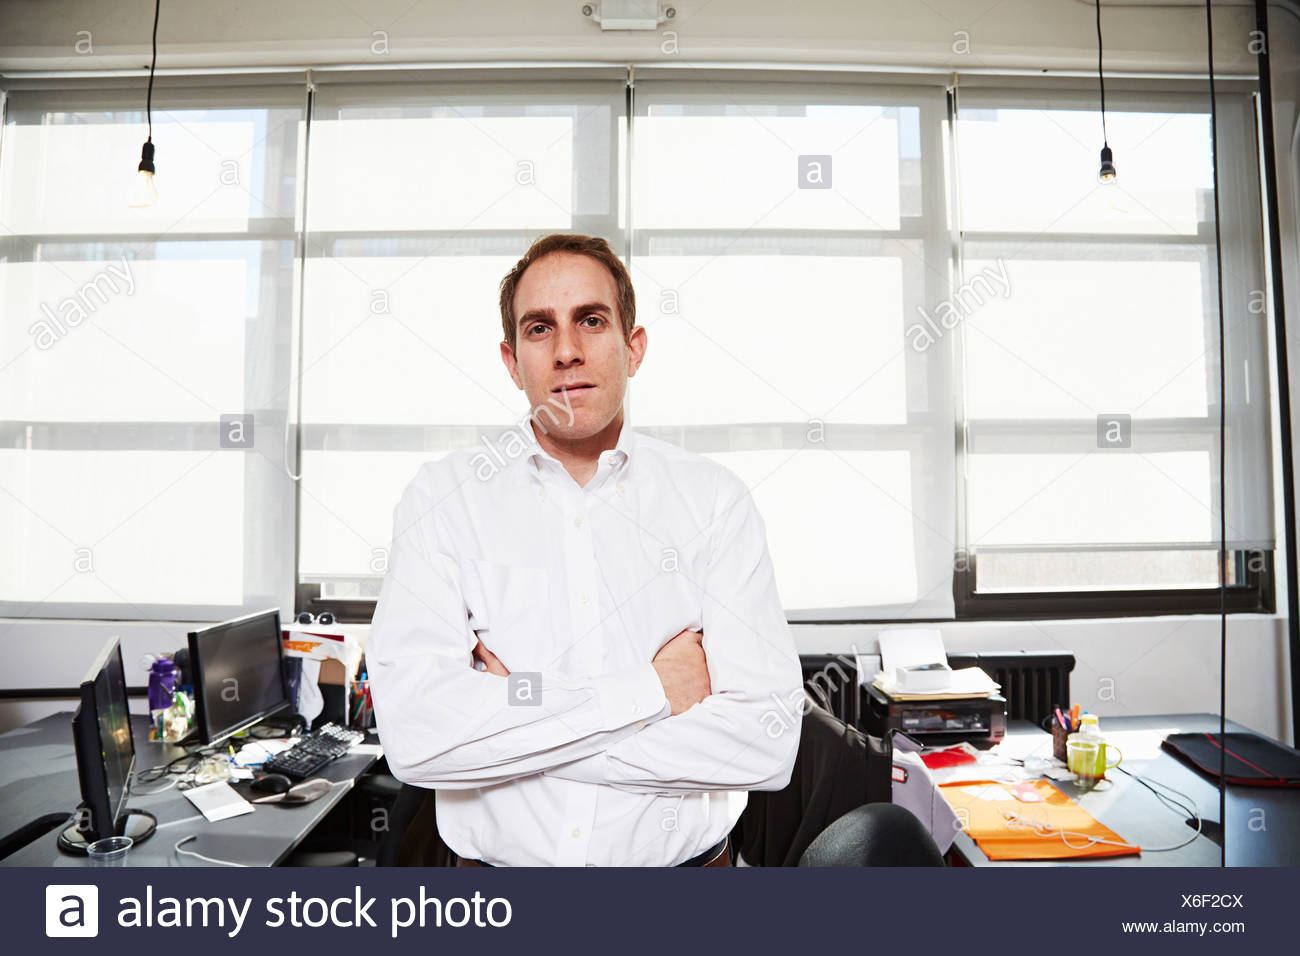 Mid adult man wearing white shirt in office - Stock Image